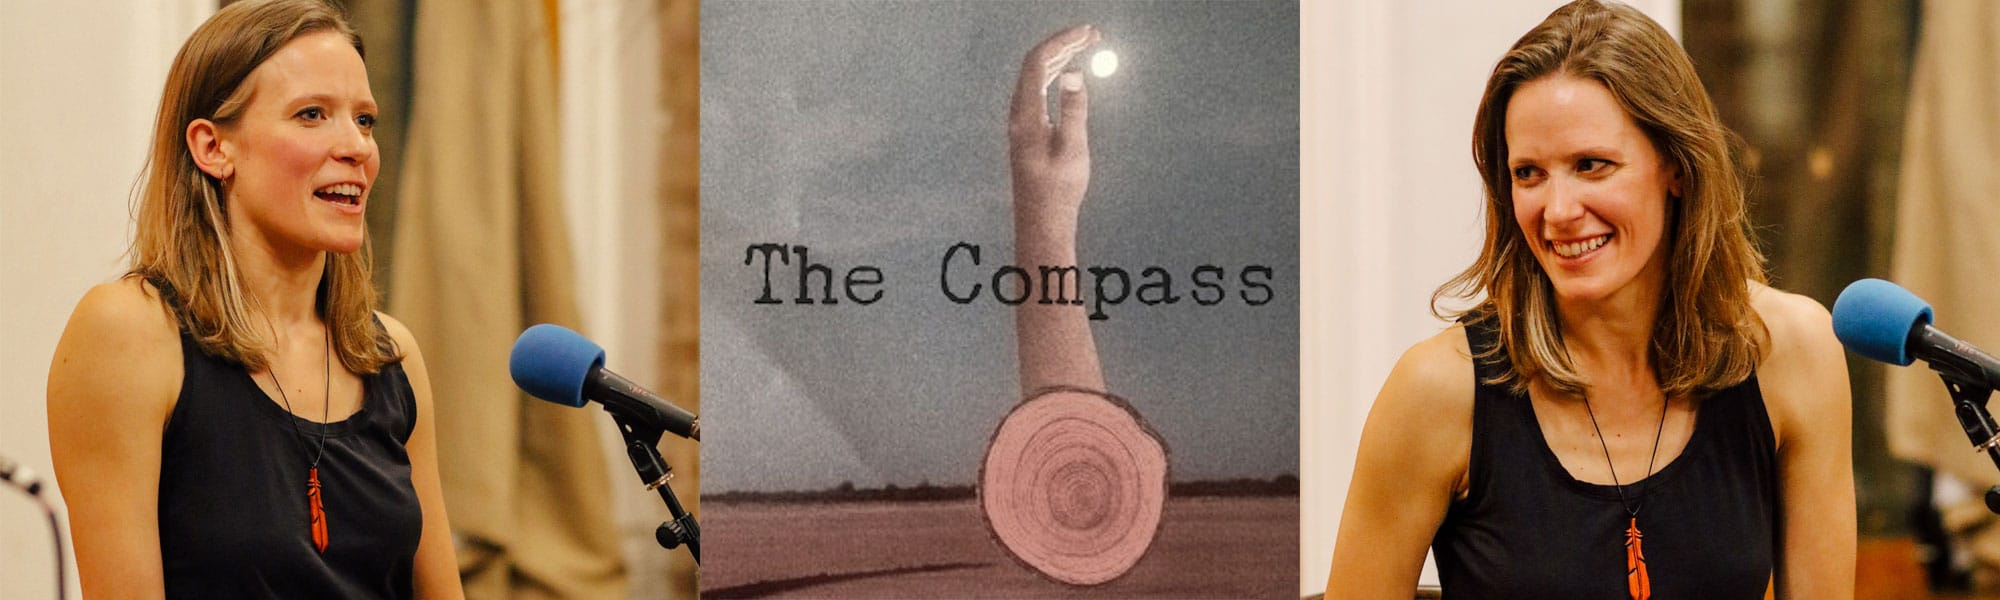 The Compass Hosted by Leah Walsh